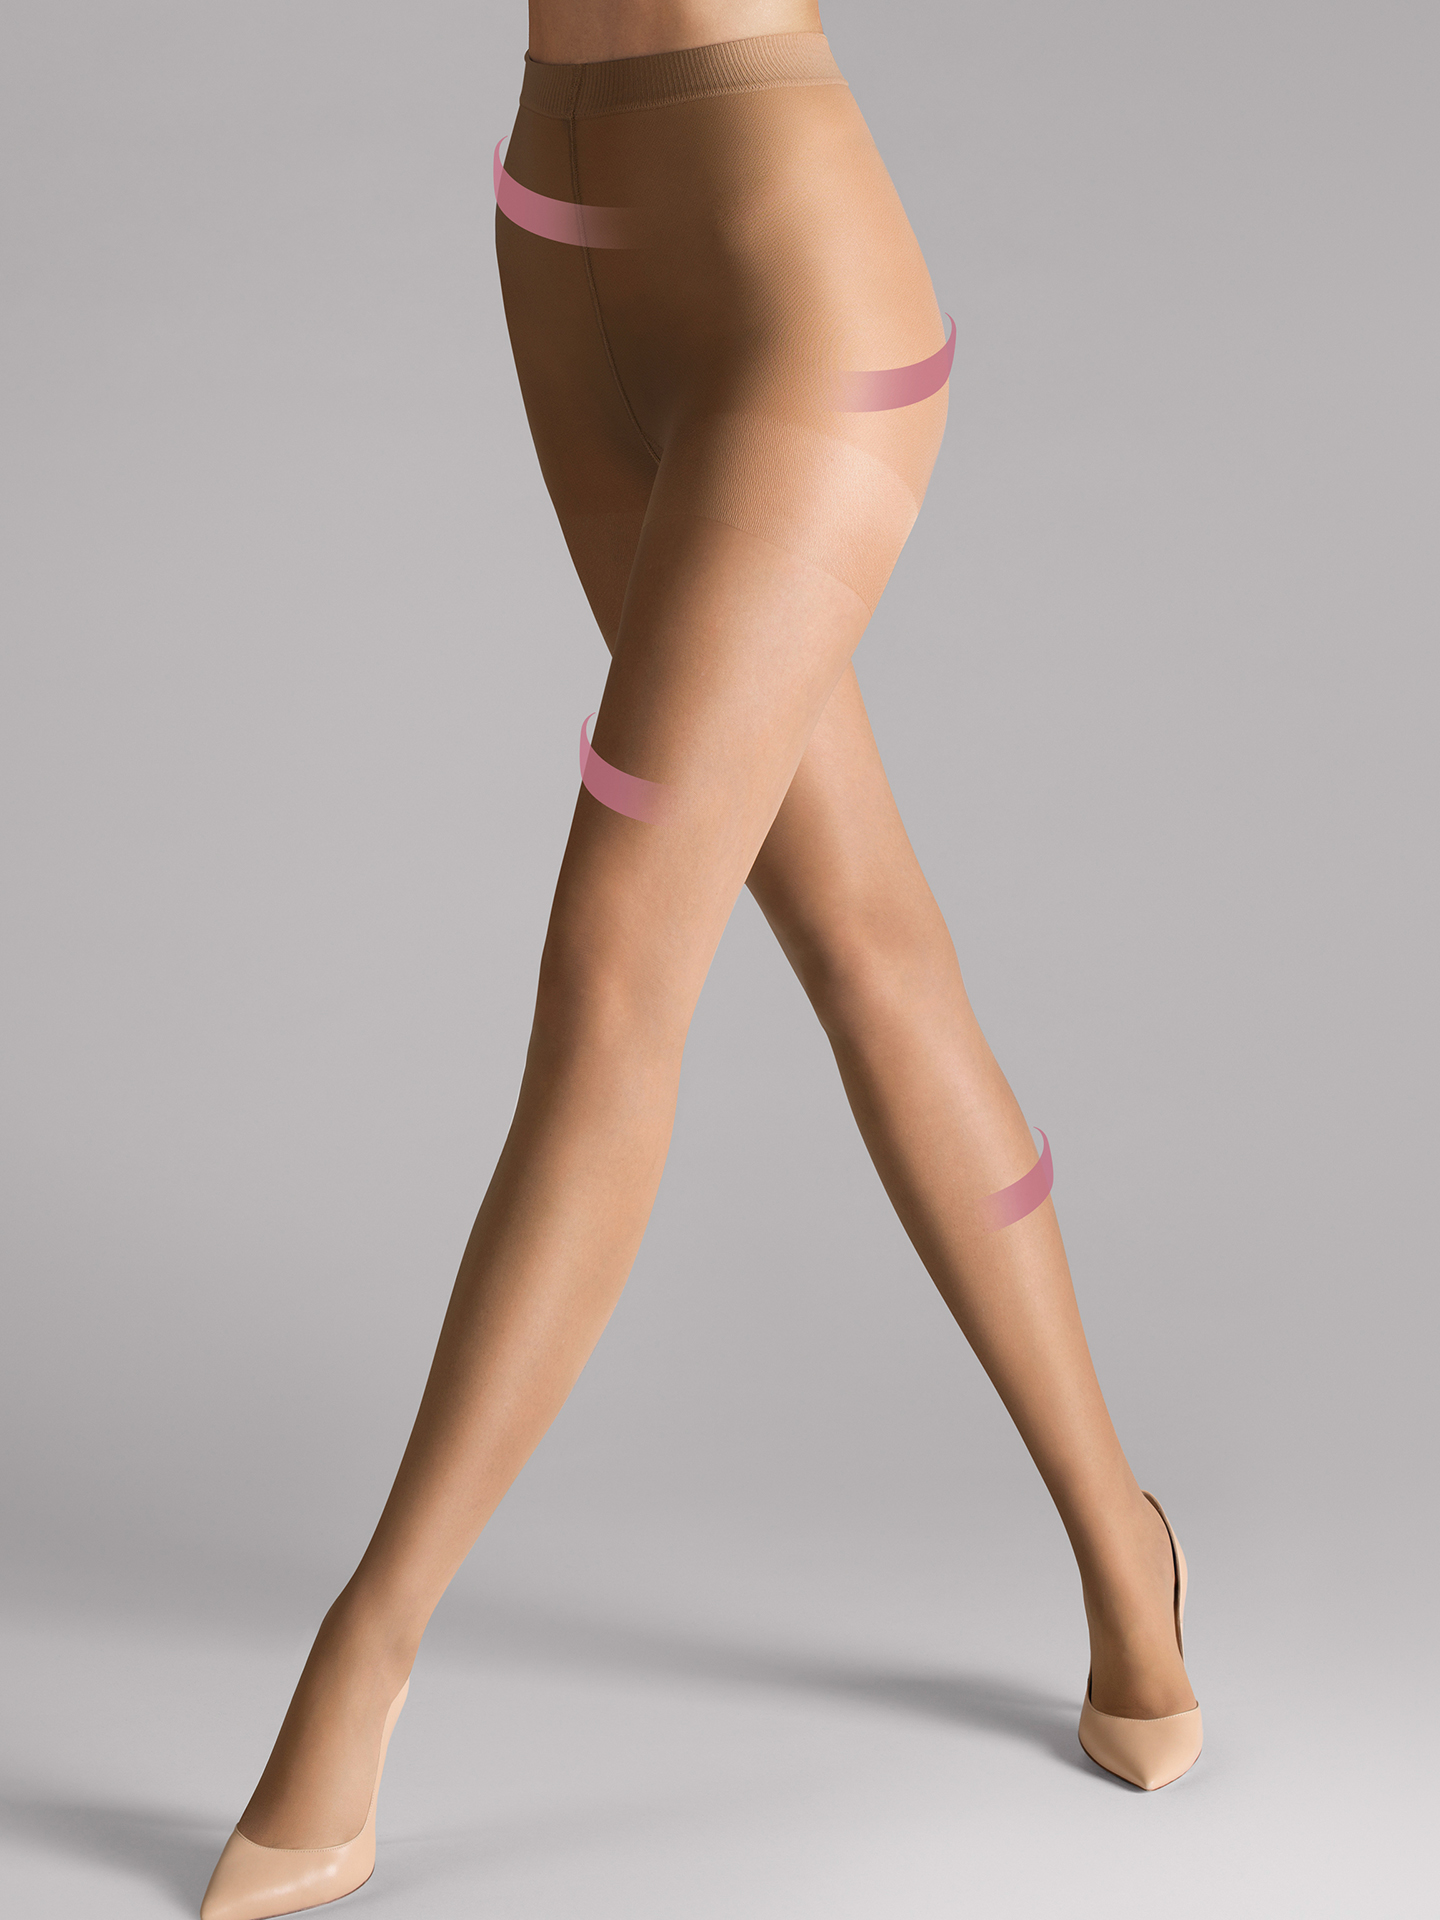 Wolford Apparel & Accessories > Clothing > Collant Miss W 30 leg support - 4004 - XS